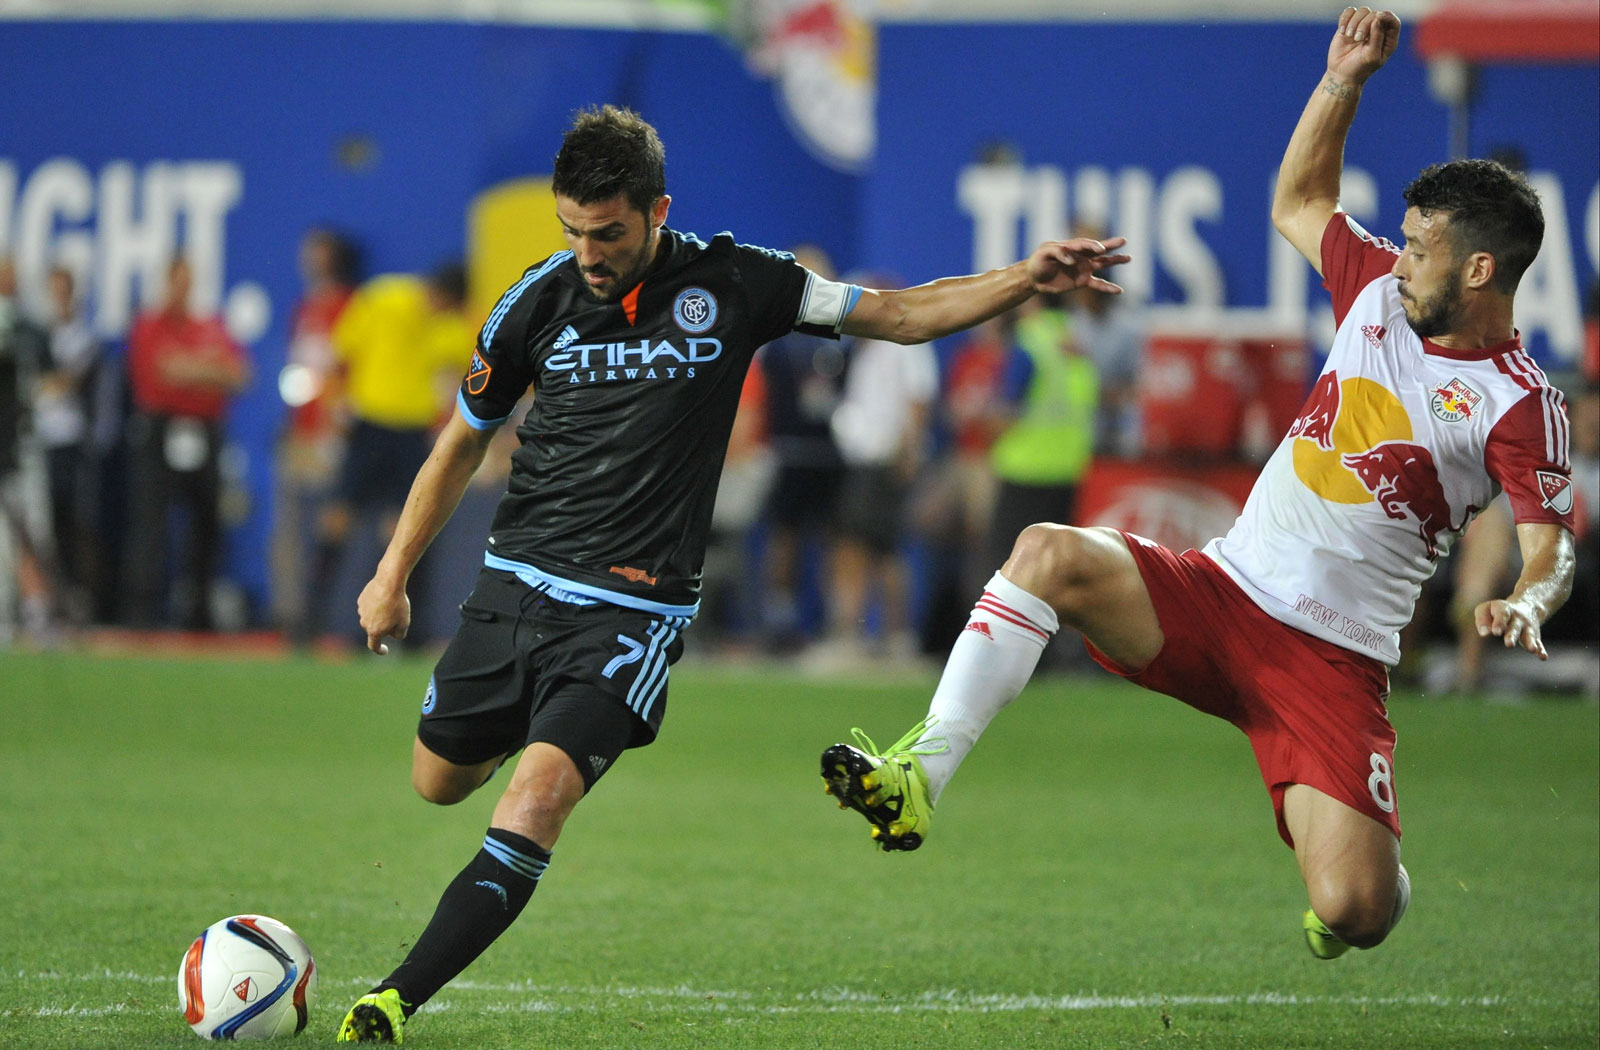 Red Bulls midfielder Felipe leaves his feet trying to stop NYCFC's David Villa. The former iced the 2-0 win at Red Bull Arena with a goal.